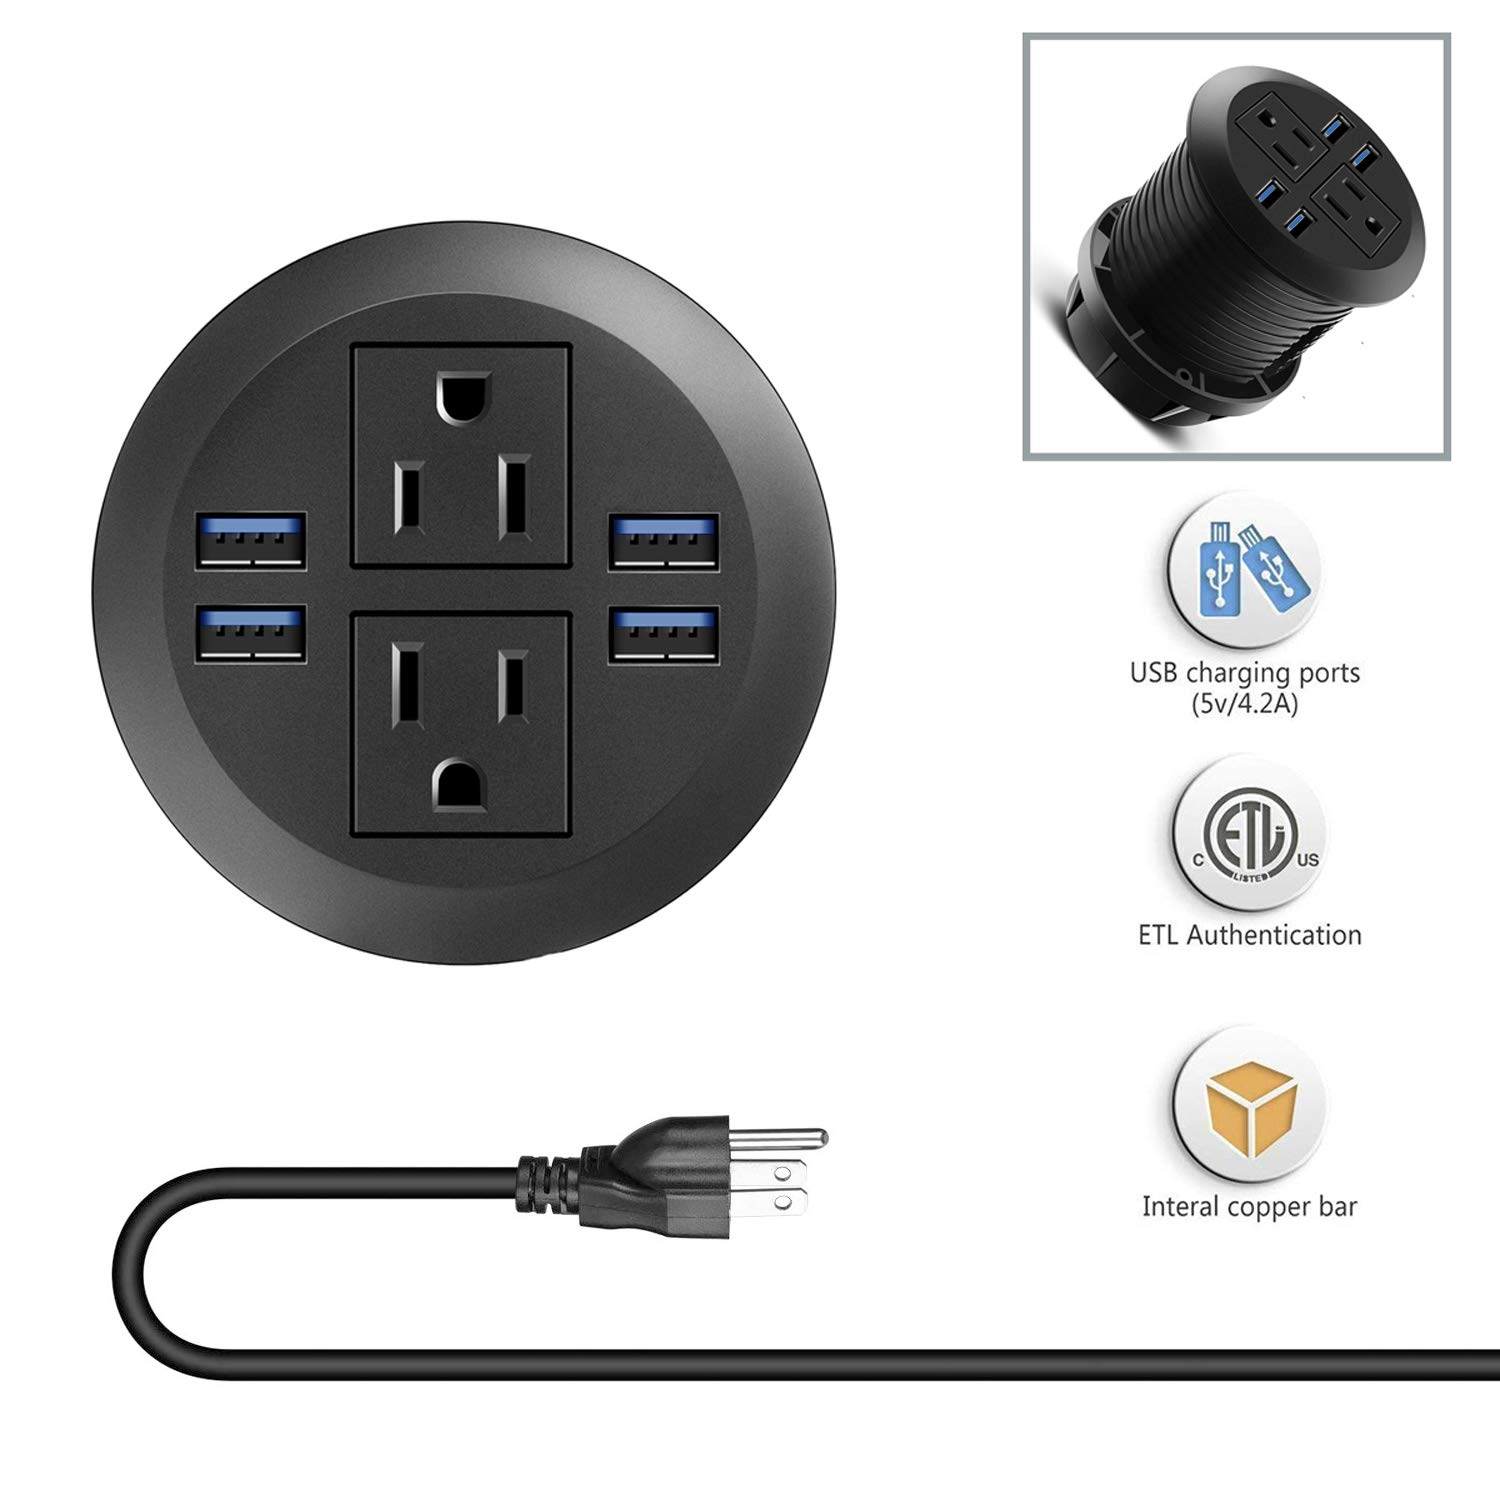 Desk Power Grommet Socket, Recessed Power Receptacle with USB, Connect 2 Plug Outlets, Mountable into 3 1/8 Inch Hole, for Conference Room Office Kitchen Table